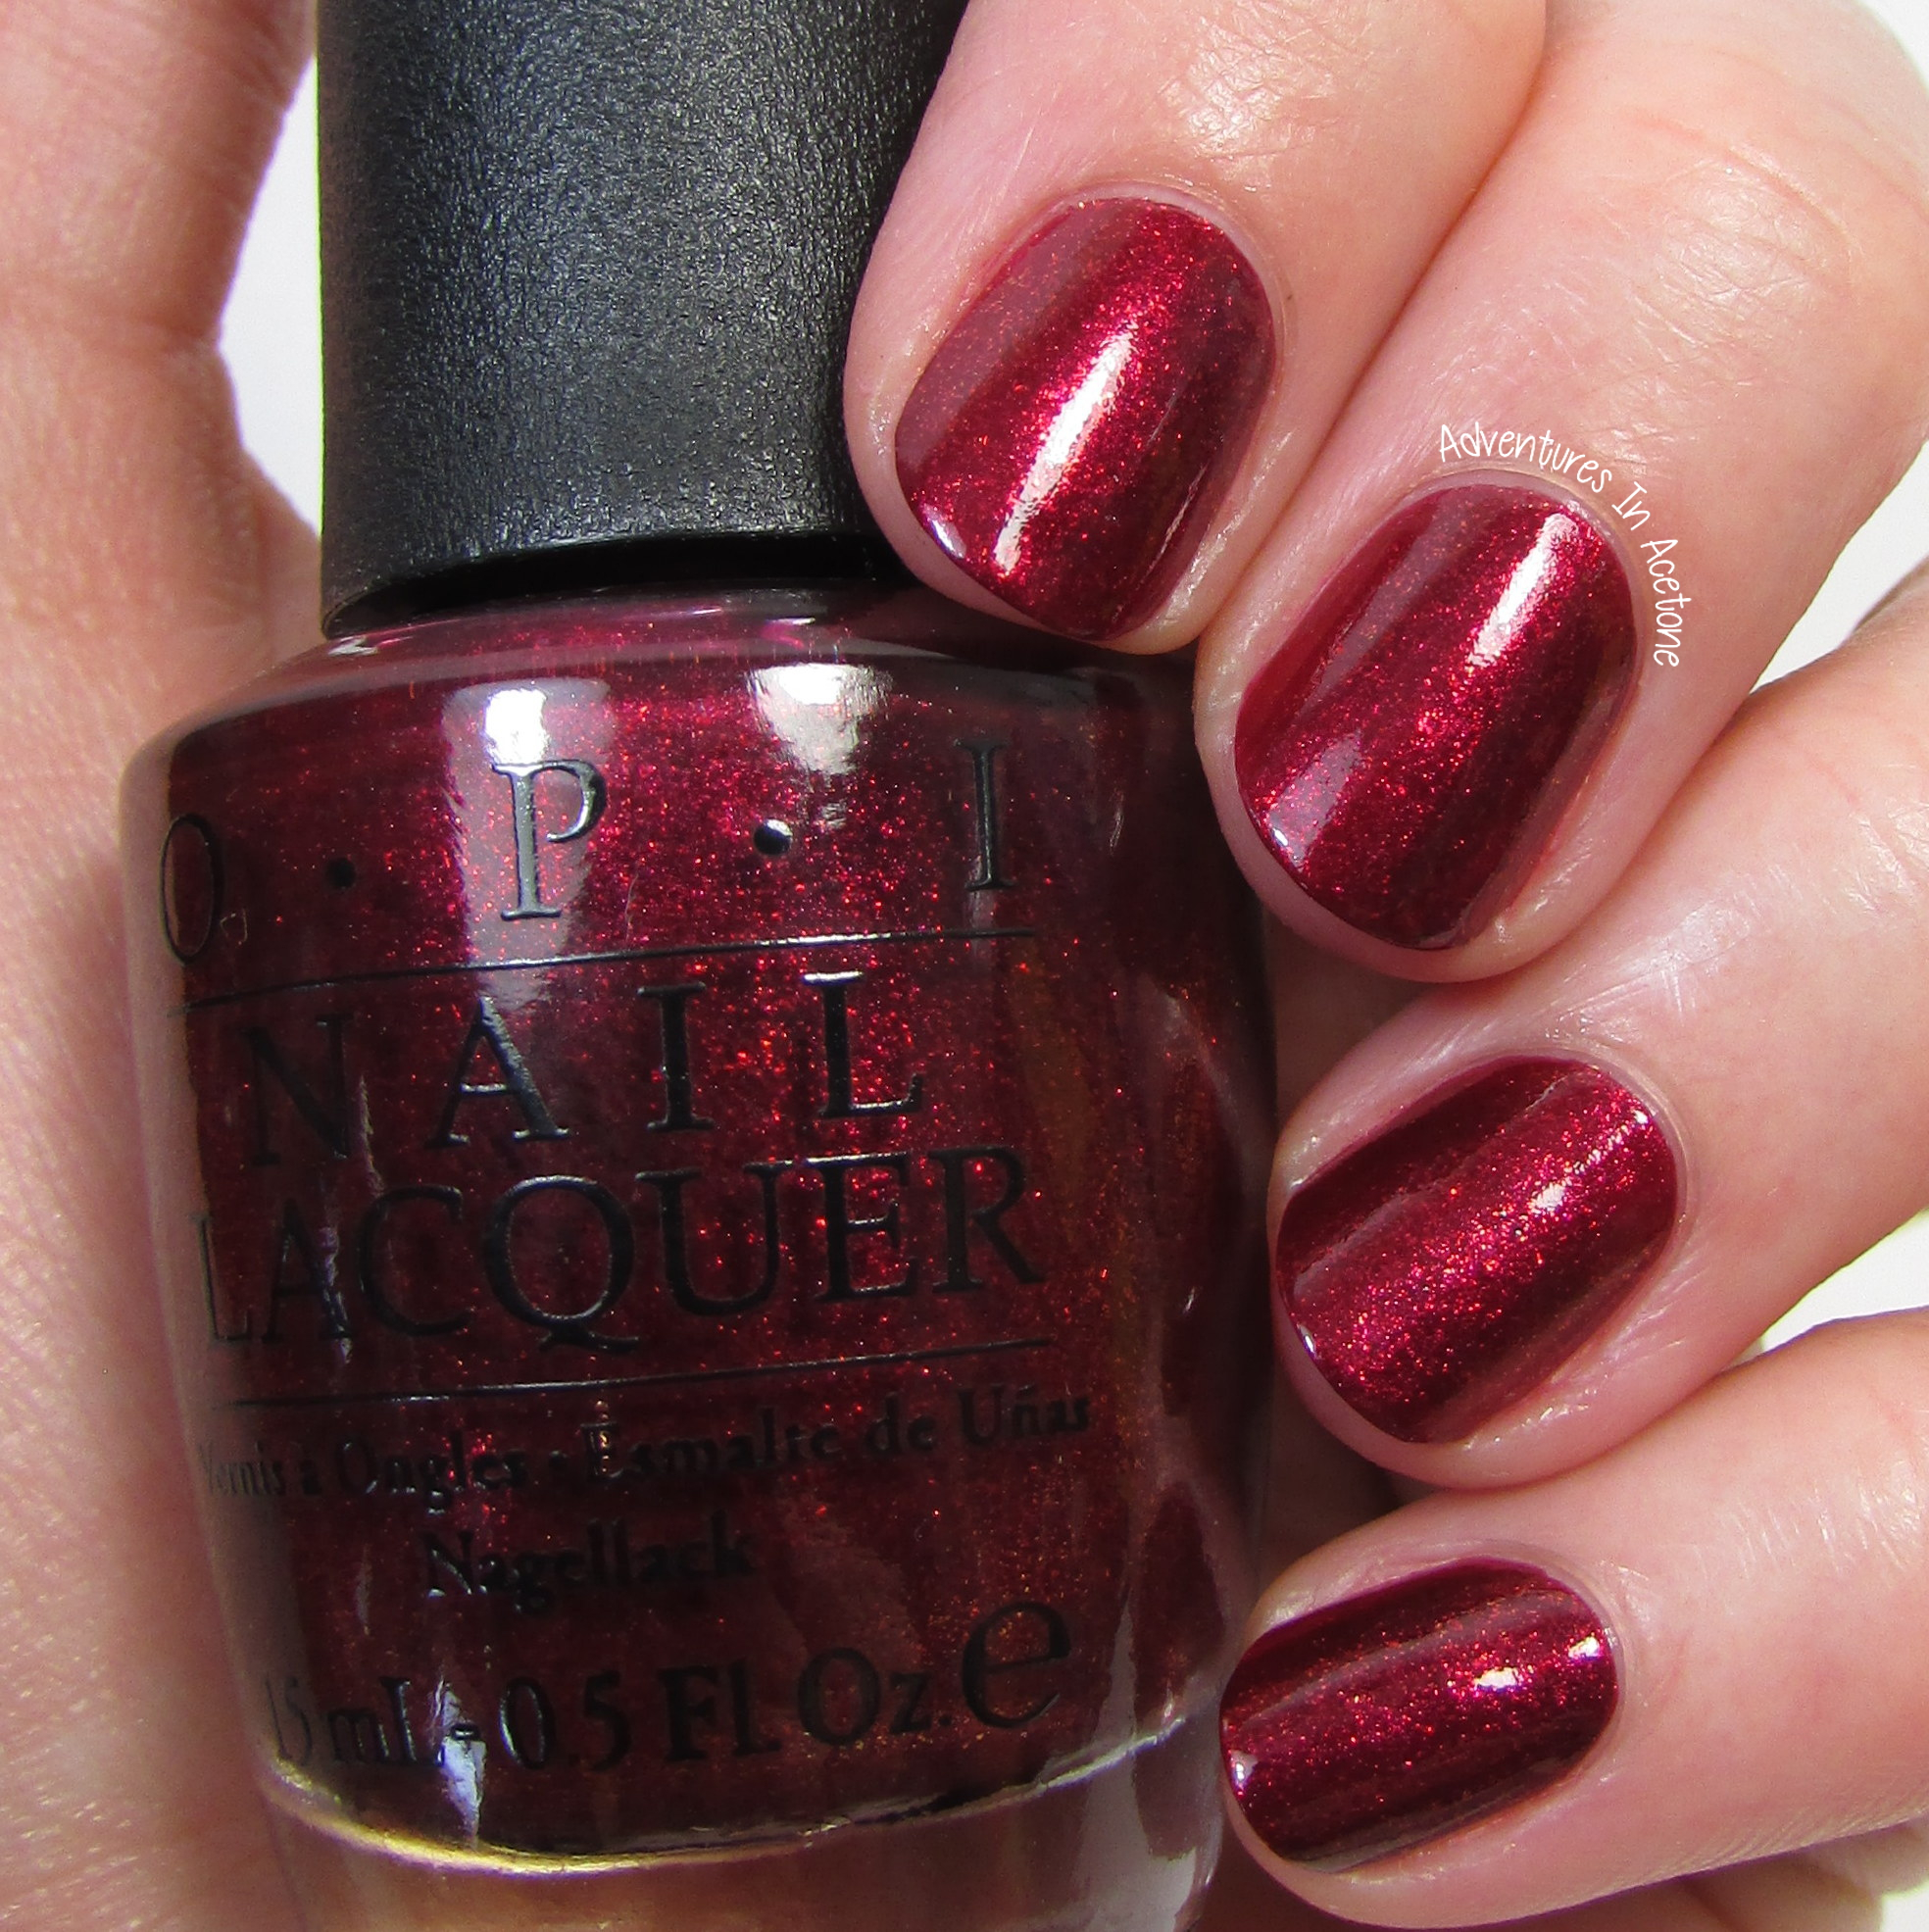 Swatch Sunday: OPI Starlight Collection - Adventures In Acetone